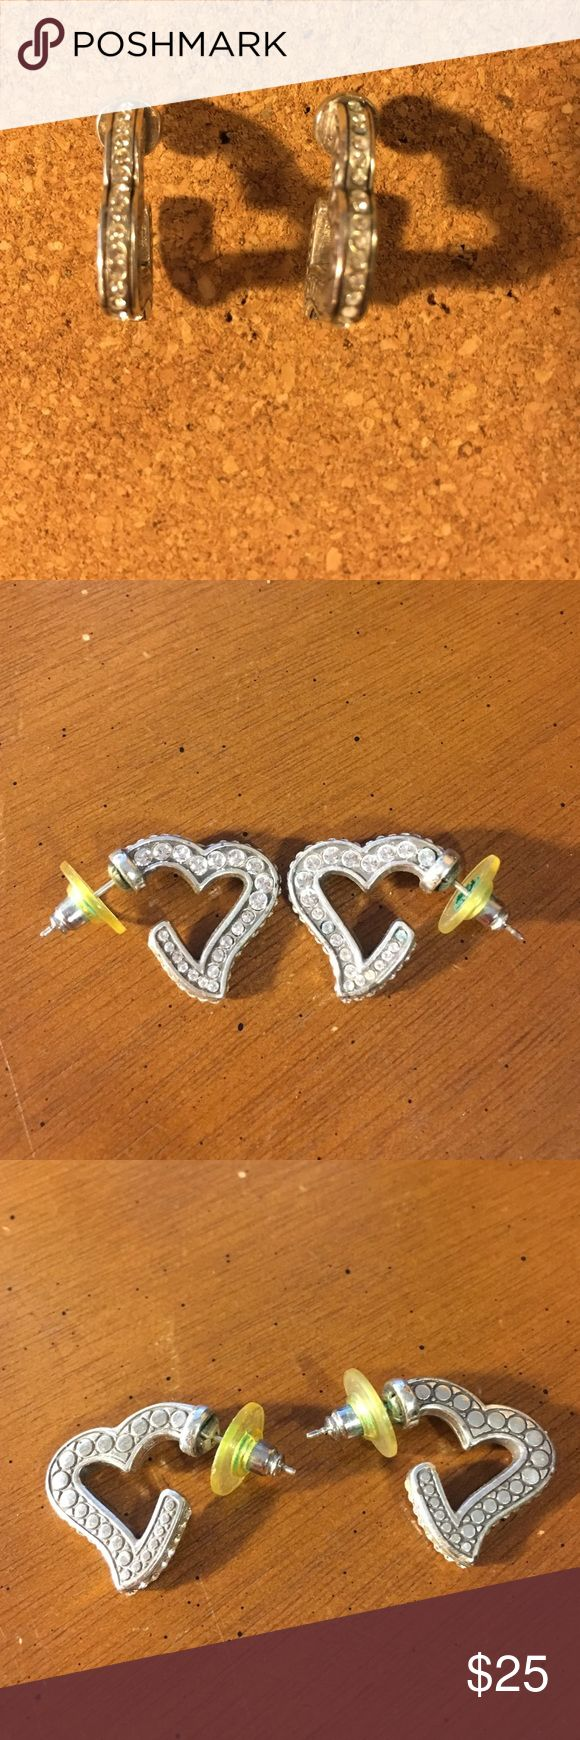 Brighton earrings Brighton sparkly or muted heart earrings.  Can be worn two ways (see pictures).  Excellent condition.  Only worn once. Brighton Jewelry Earrings